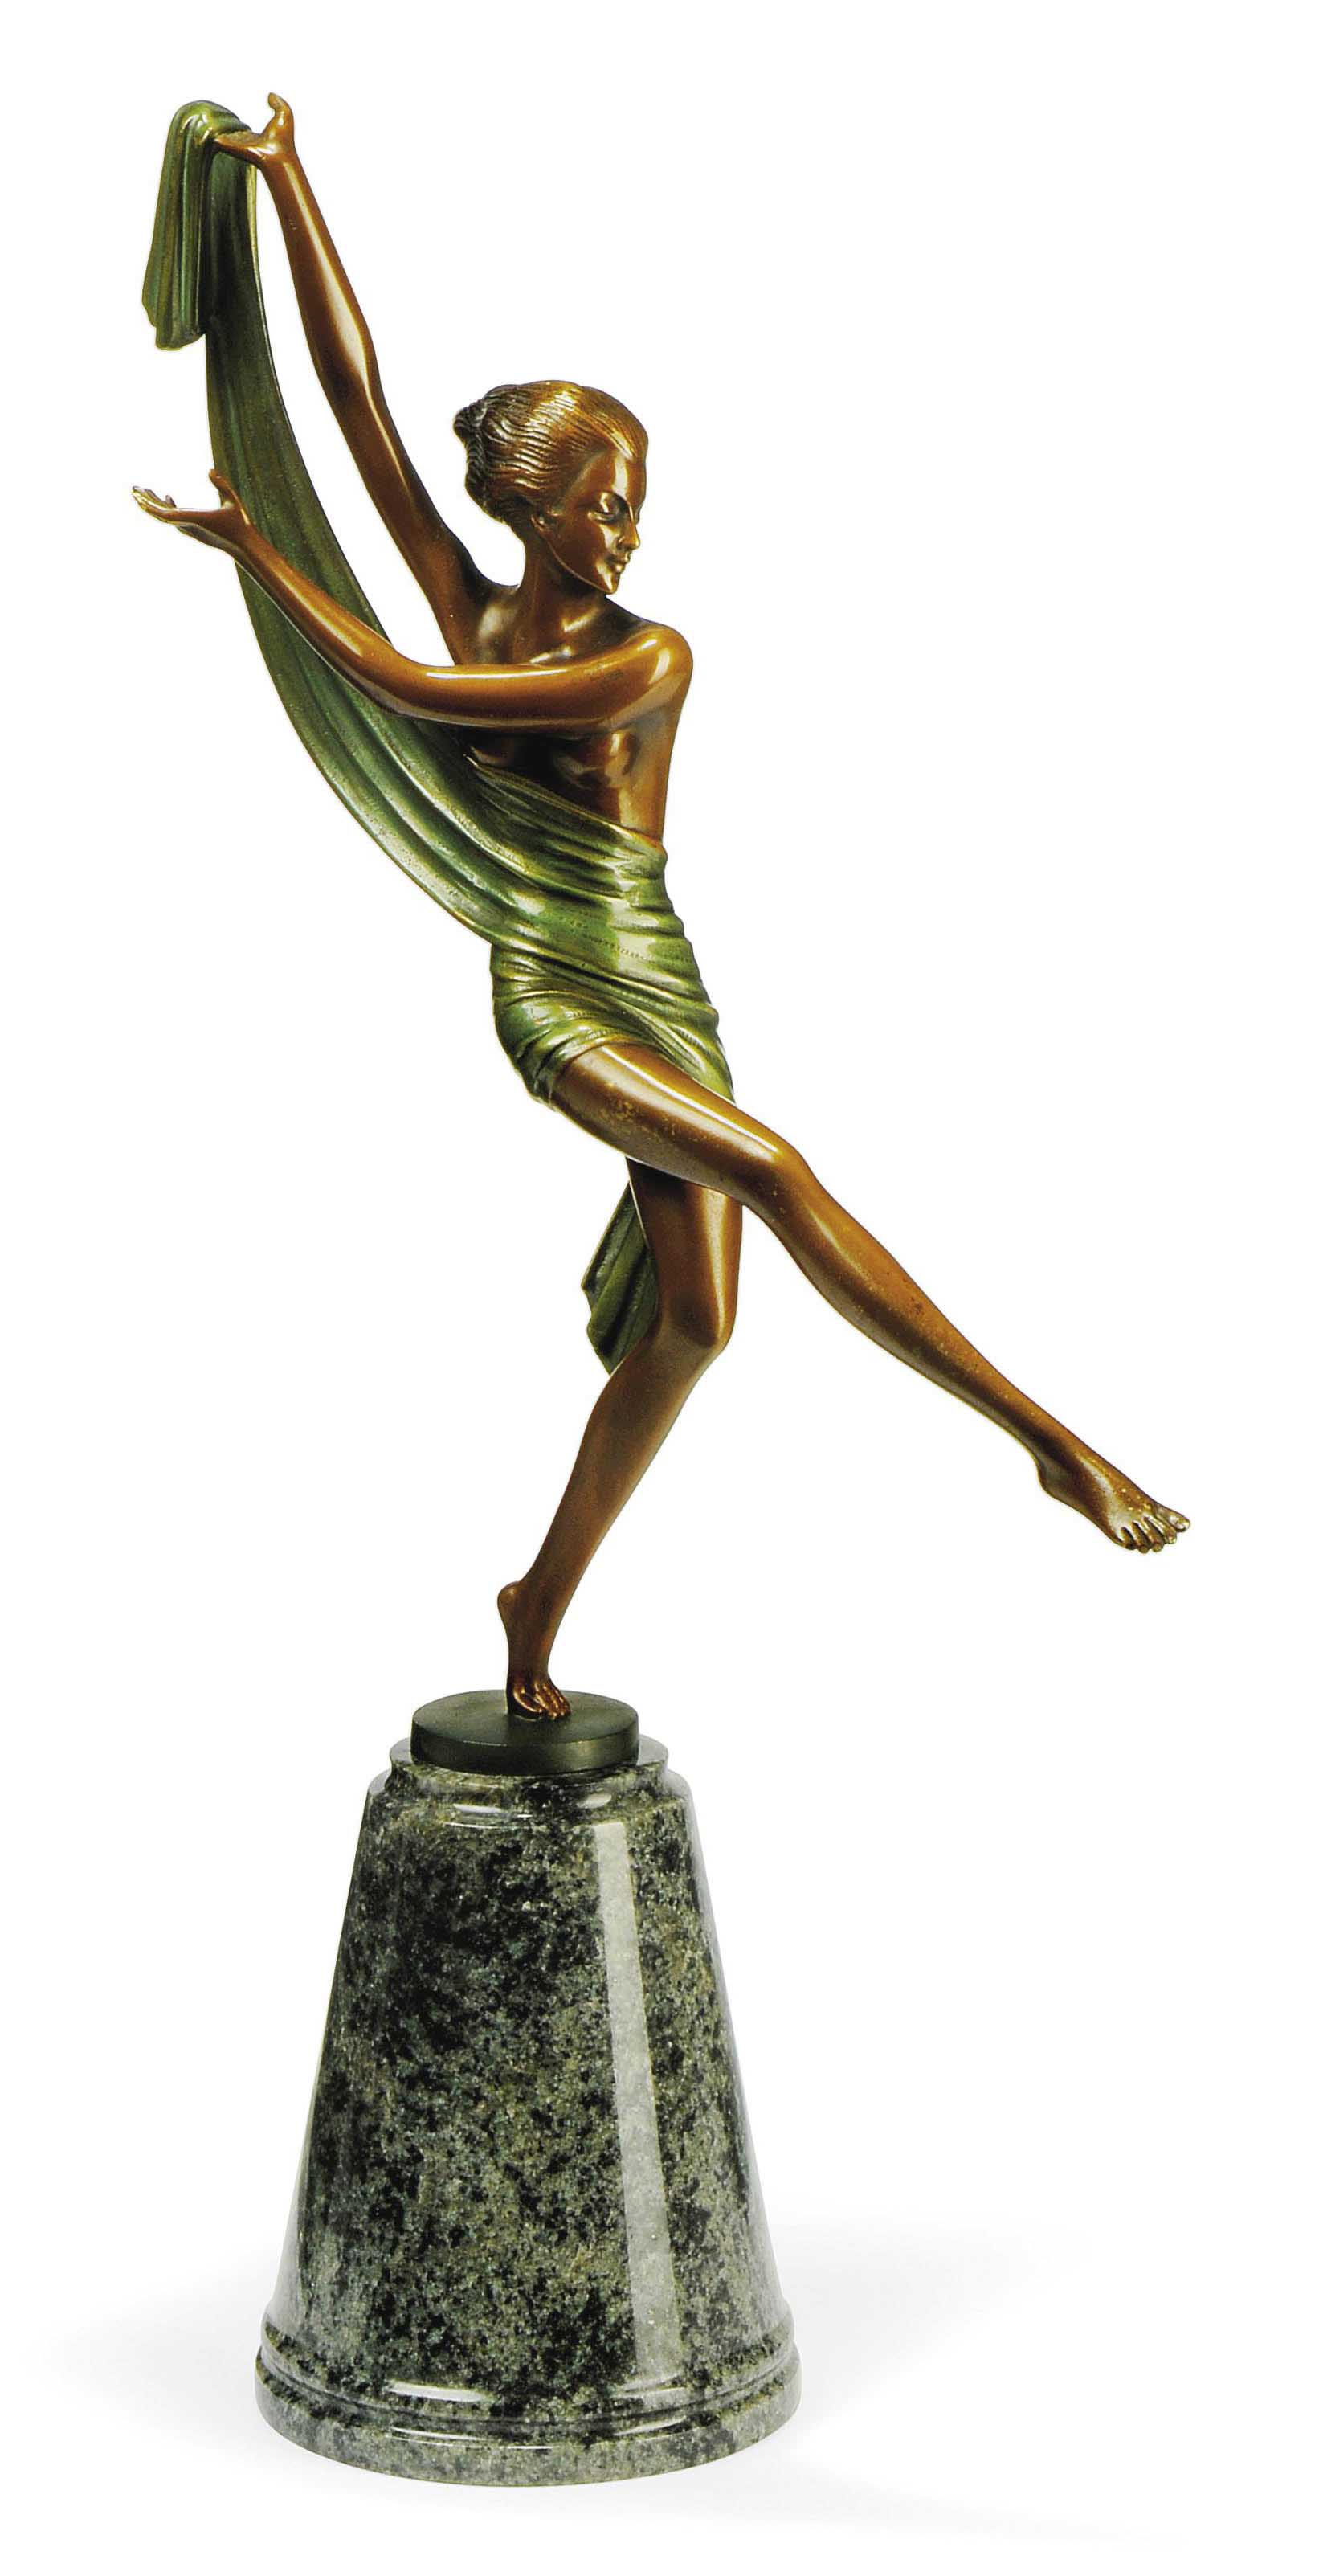 A COLD-PAINTED BRONZE FIGURE BY JOSEF LORENZL